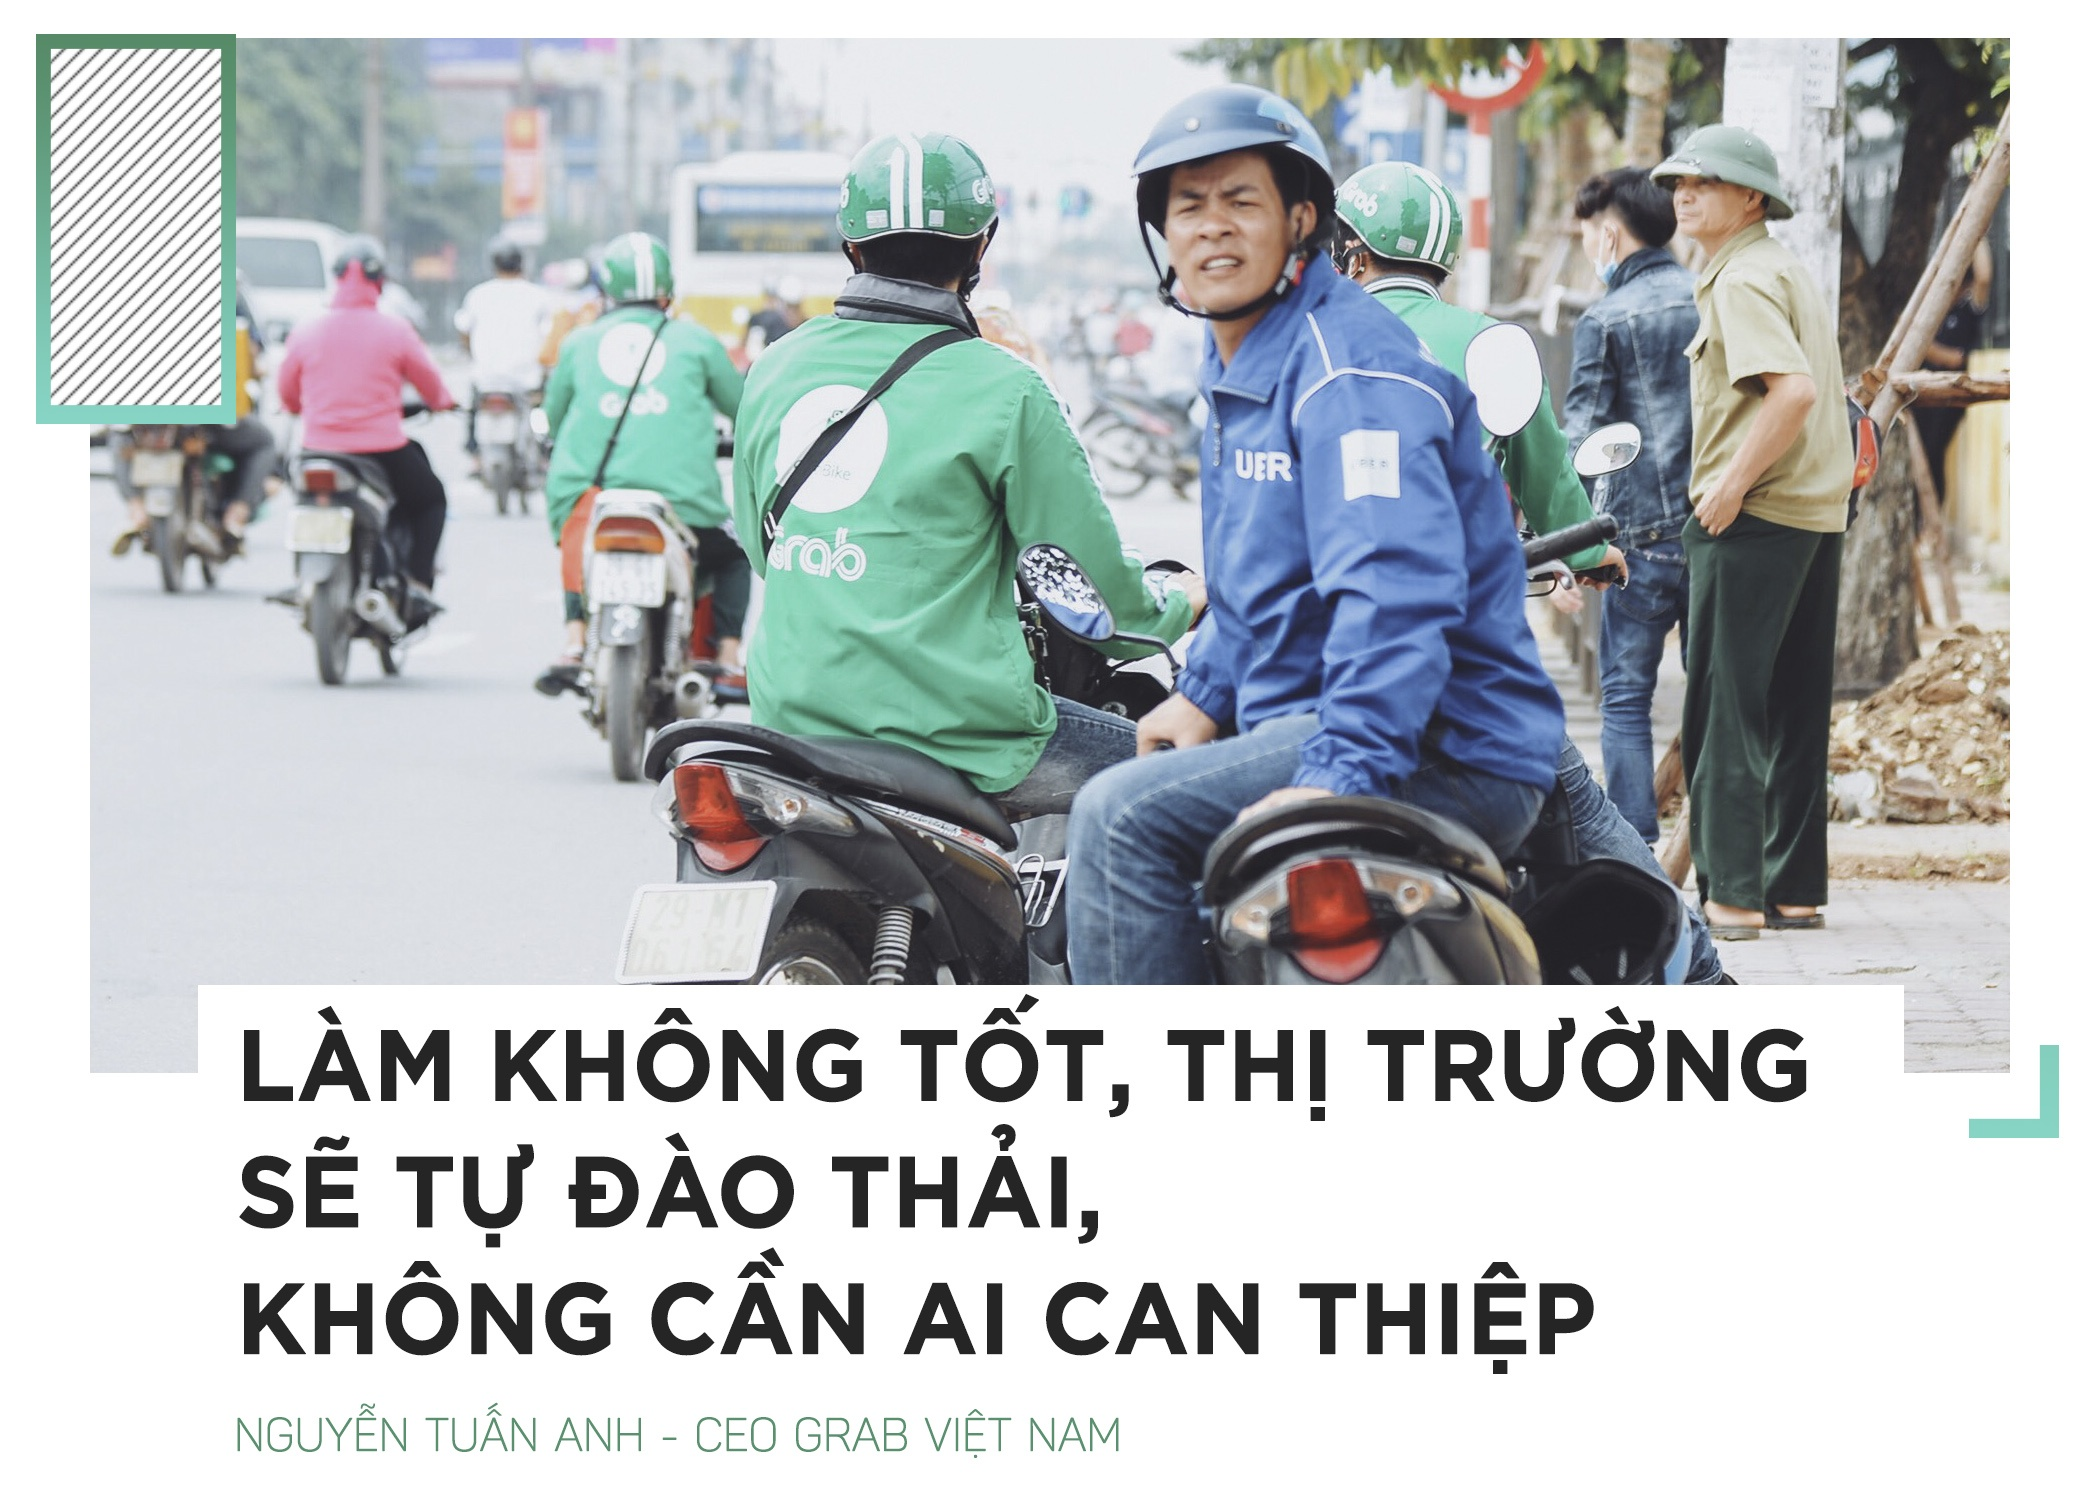 Uber, Grab voi cuoc chien gia cuoc xe om hinh anh 9